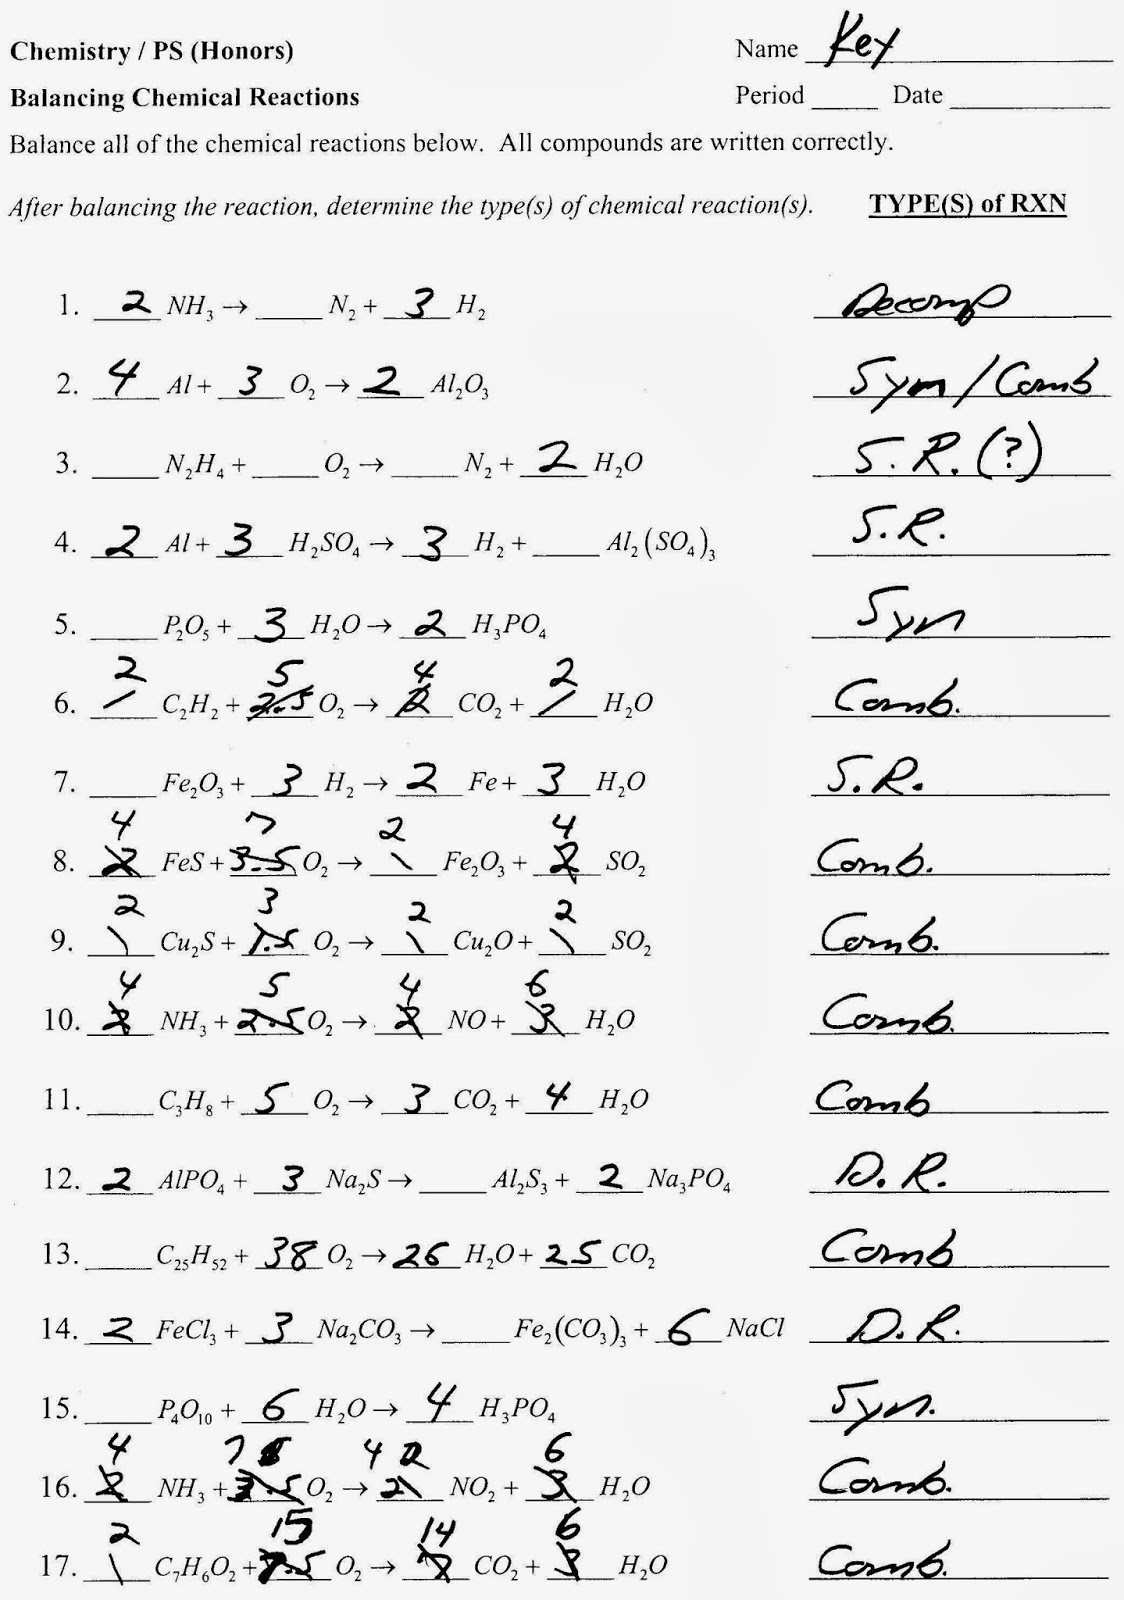 Aldiablosus  Pleasant Balancing Chemical Equations Worksheets Balancing Chemical  With Lovely Balancing Chemical Equations Worksheet Answer Key On Chemistry Double With Amazing Possessive Form Of Plural Nouns Worksheets Also Odd Numbers Worksheet In Addition Id Word Family Worksheets And Line And Line Segment Worksheets As Well As Phonics A Worksheet Additionally Simple Preposition Worksheets From Letstalkhiphopus With Aldiablosus  Lovely Balancing Chemical Equations Worksheets Balancing Chemical  With Amazing Balancing Chemical Equations Worksheet Answer Key On Chemistry Double And Pleasant Possessive Form Of Plural Nouns Worksheets Also Odd Numbers Worksheet In Addition Id Word Family Worksheets From Letstalkhiphopus